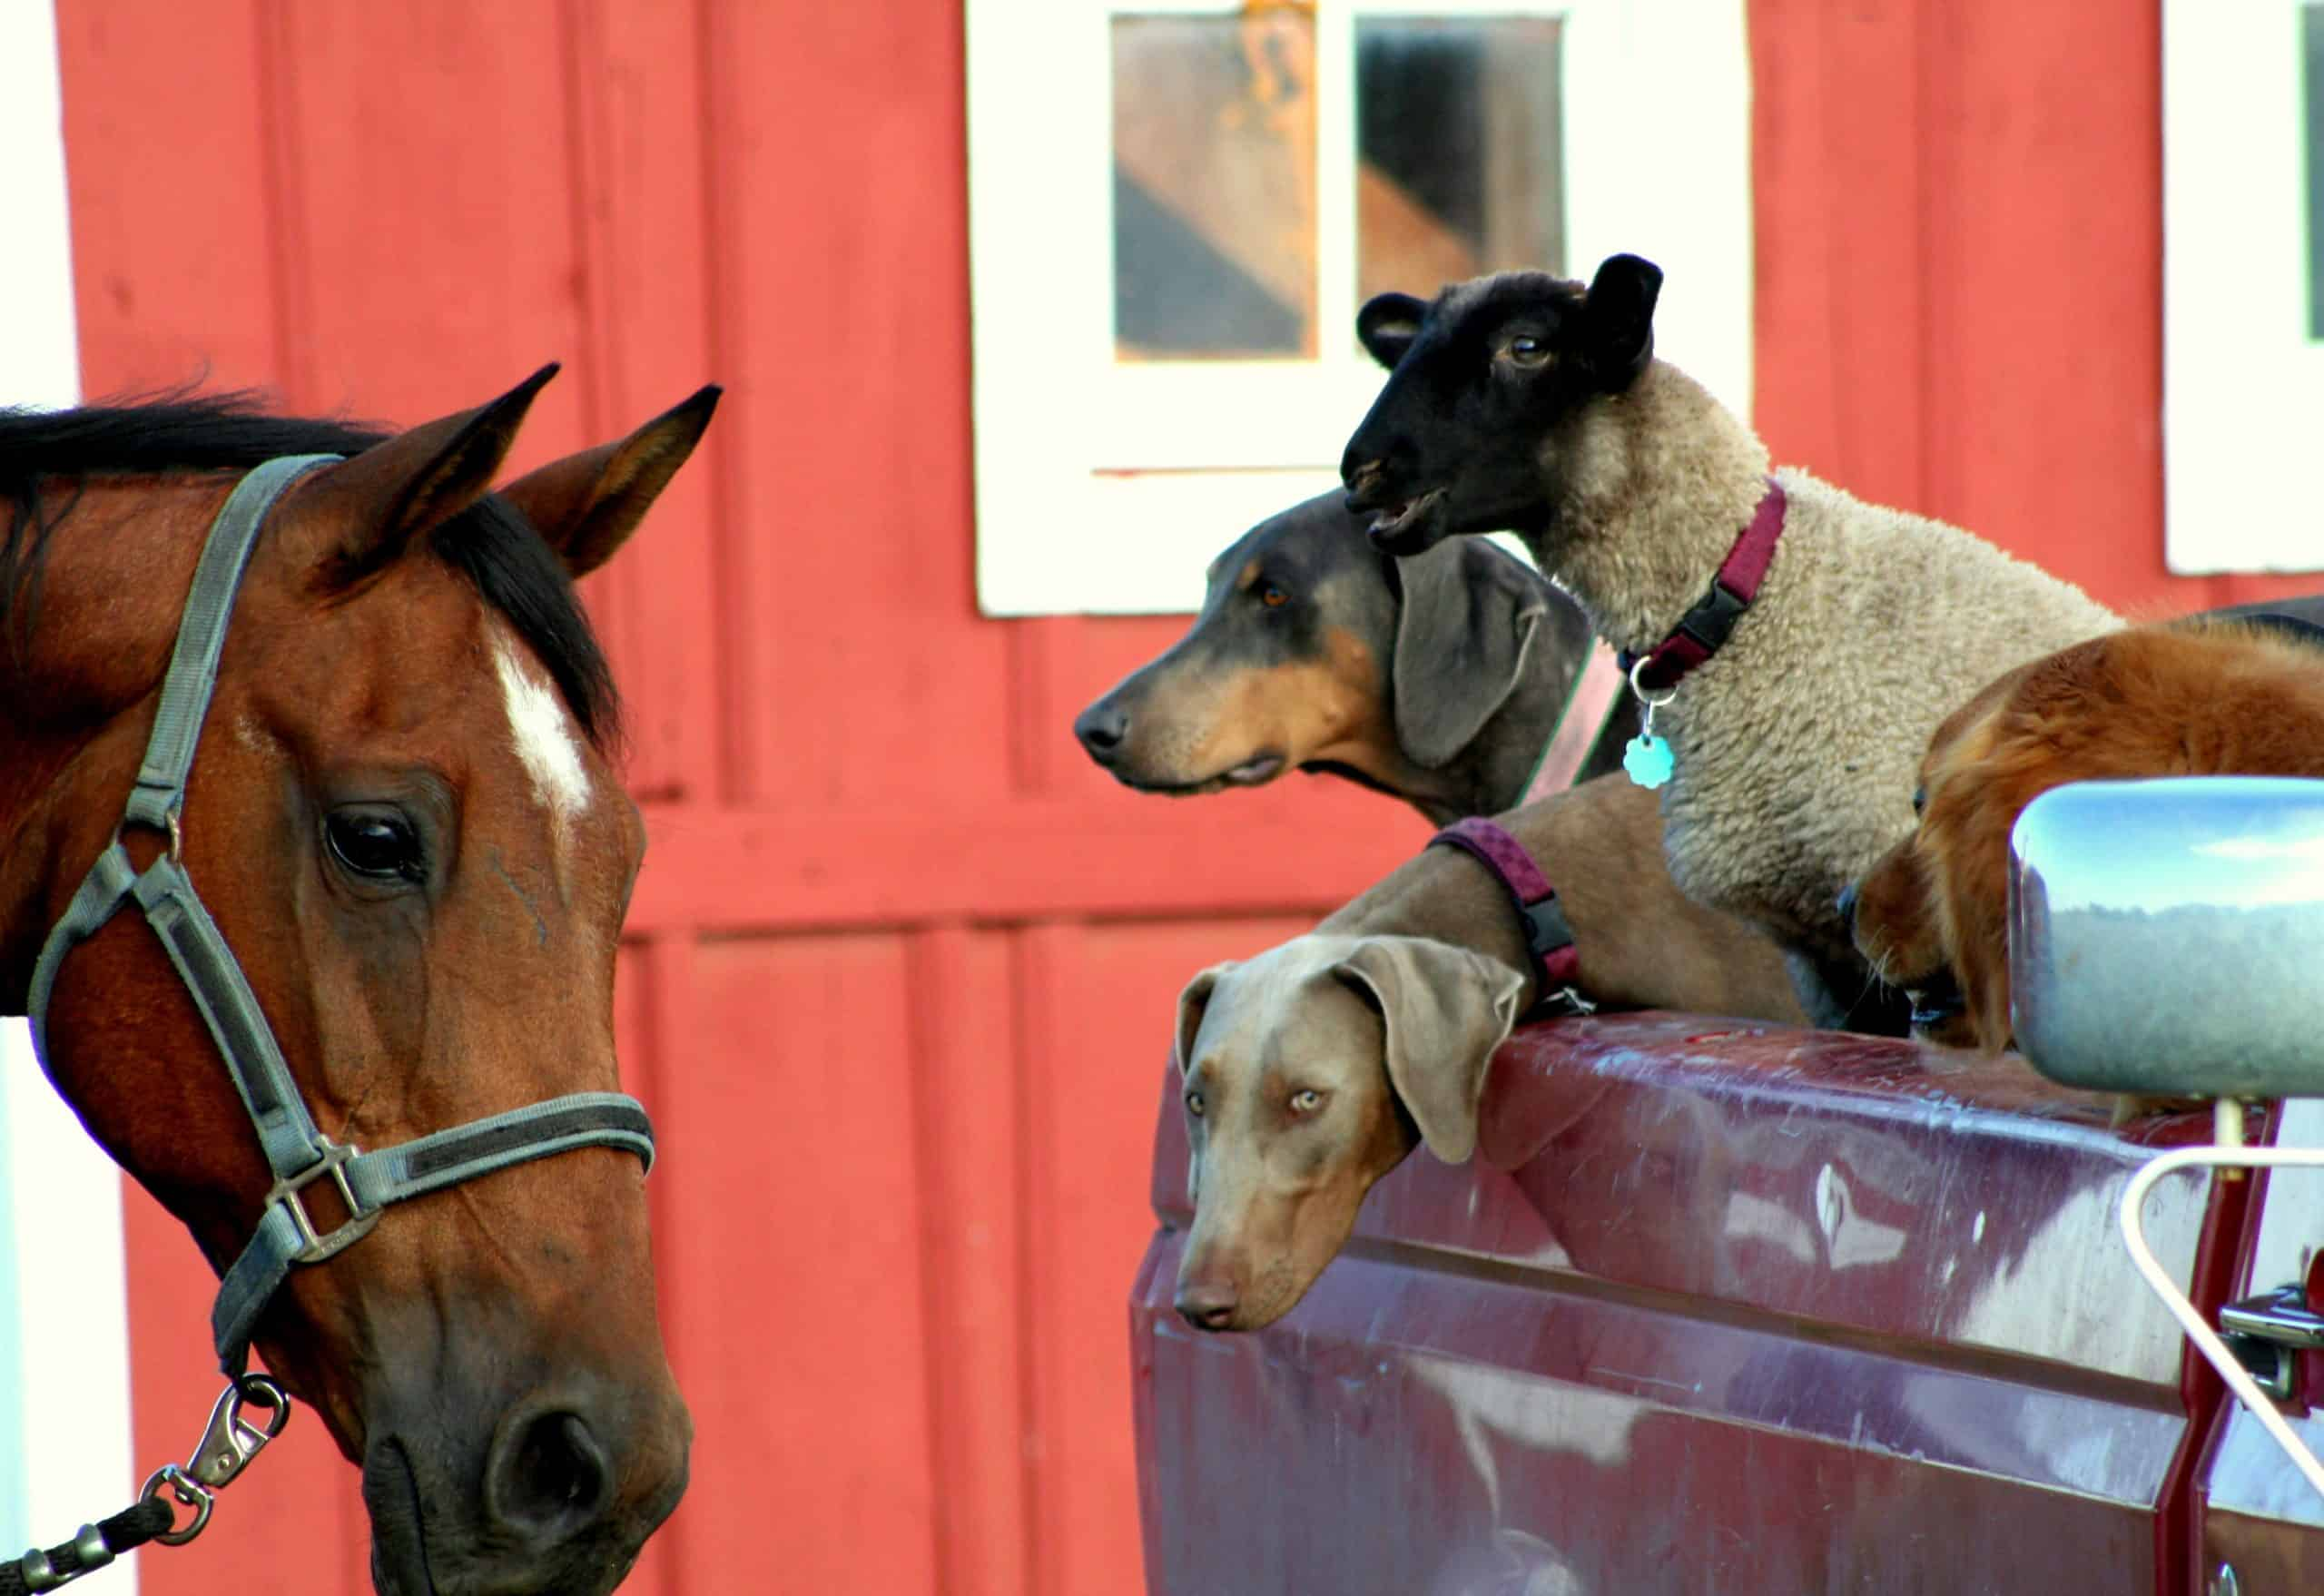 animals in a pickup truck investigating a horse